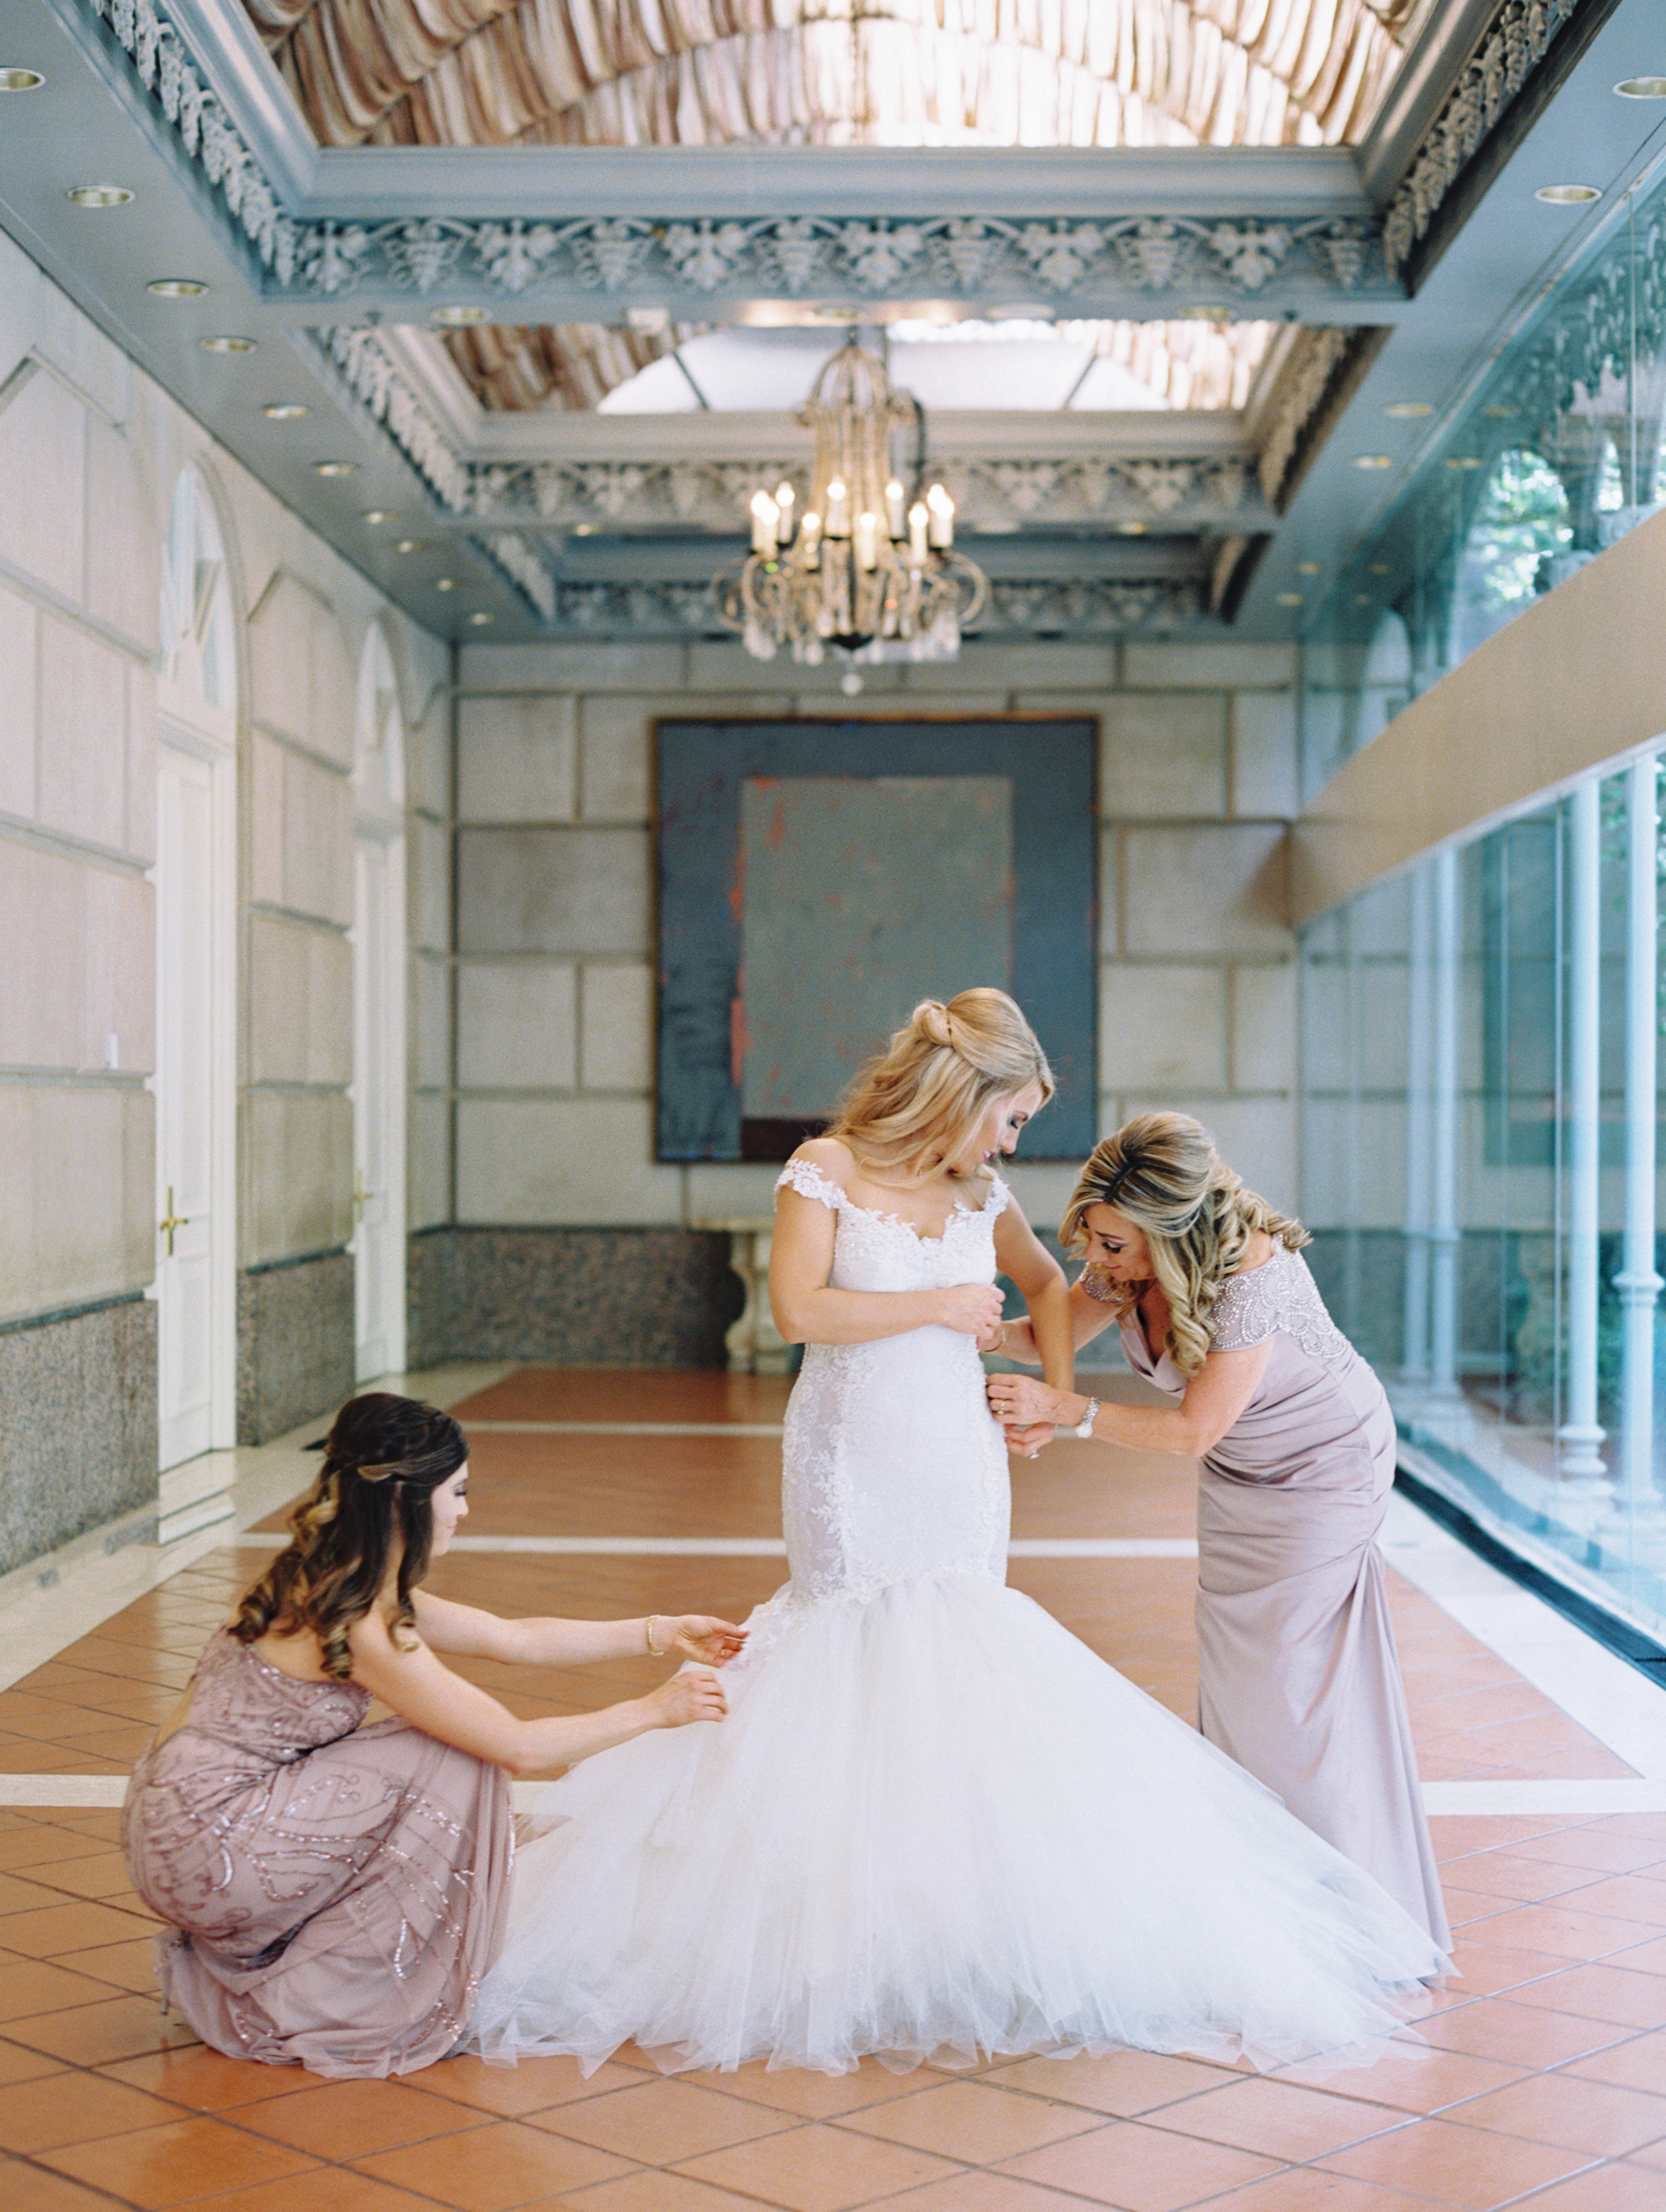 Blakeley-and-her-ladies-putting-on-dress-Ivory-and-Vine.JPG